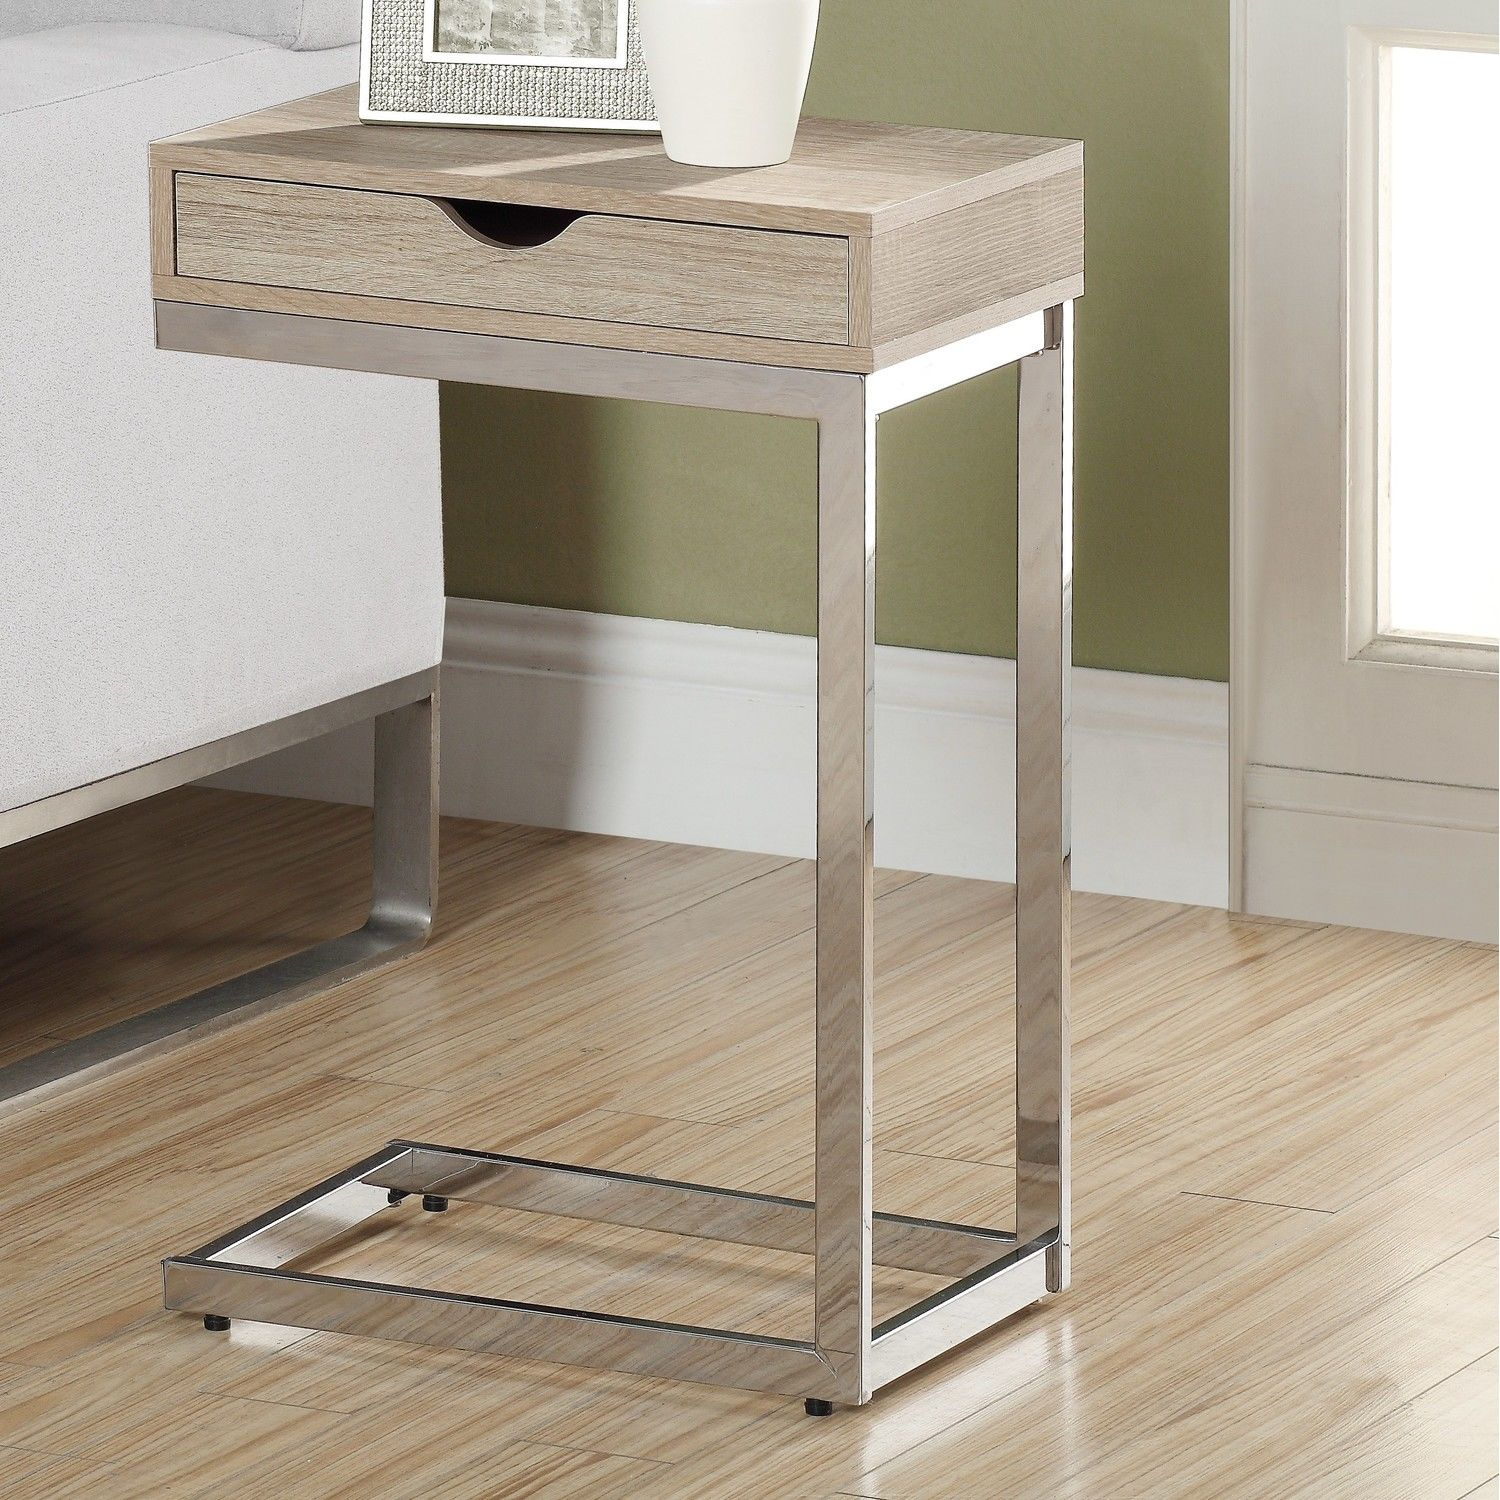 top sofa table with drawers decoration-Incredible sofa Table with Drawers Model